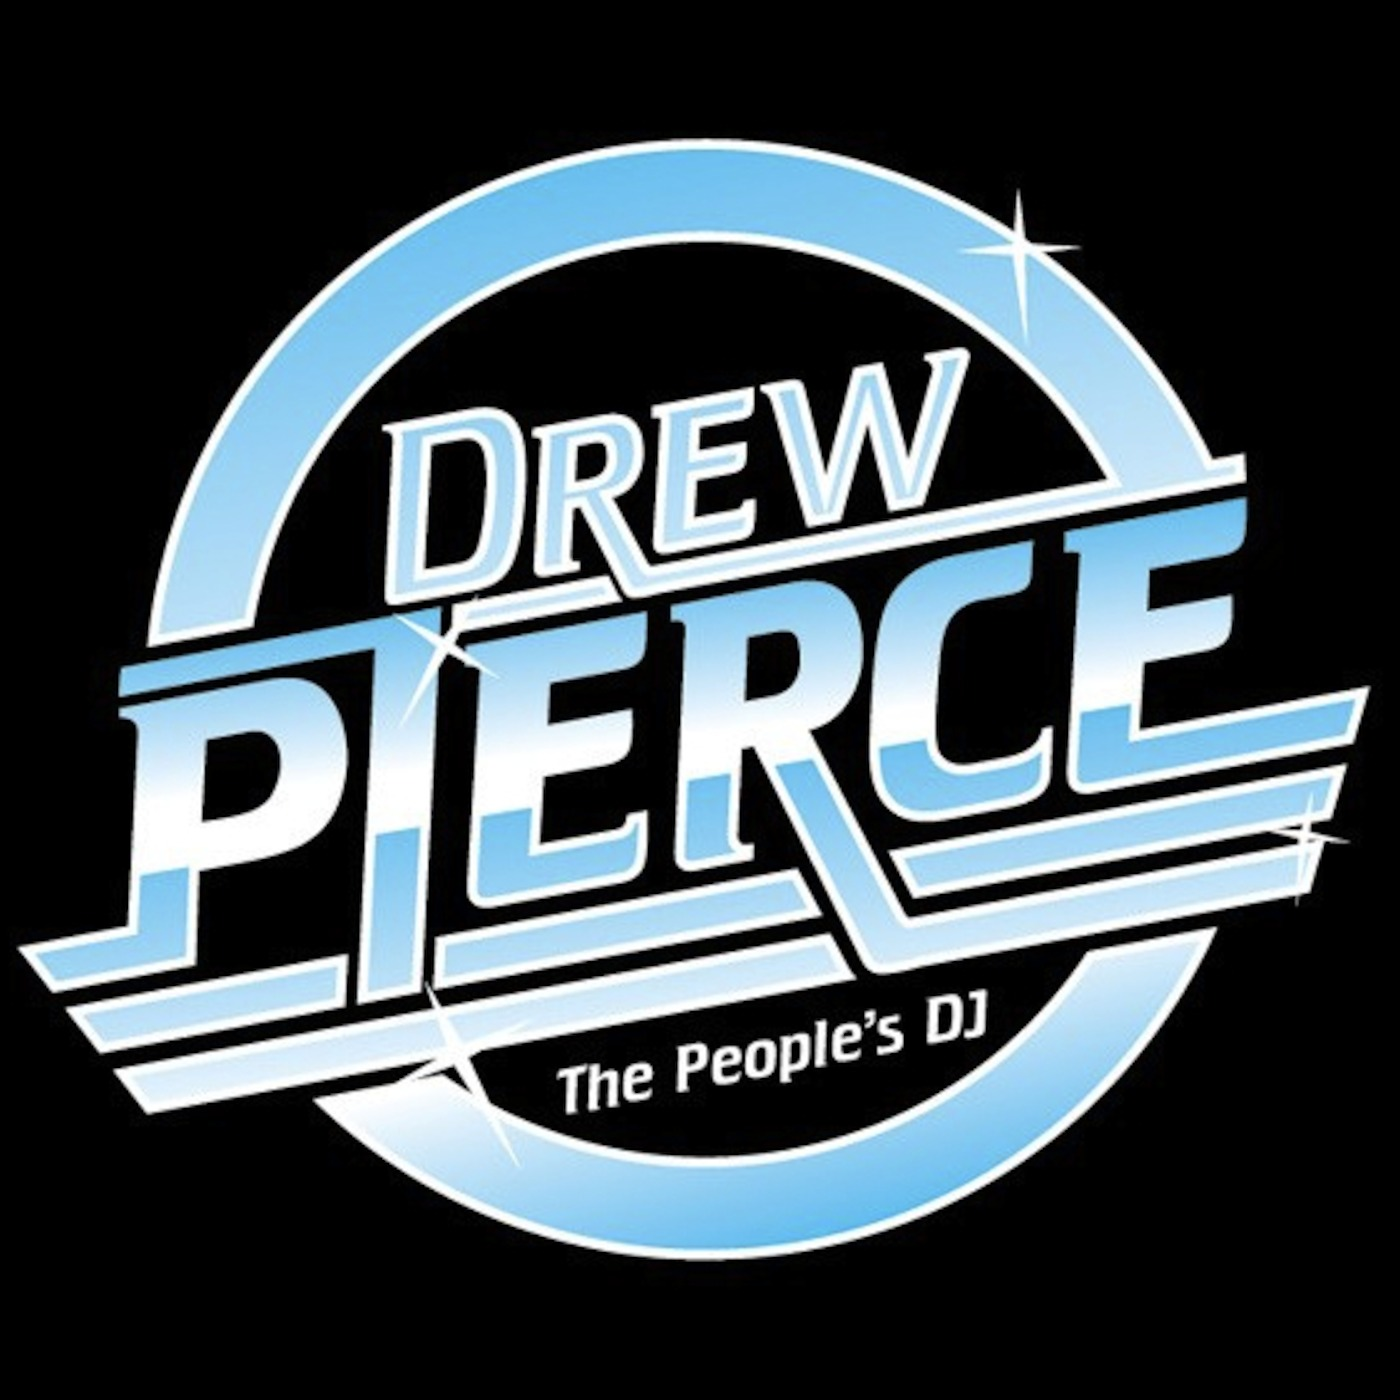 DJ Drew Pierce's Podcast